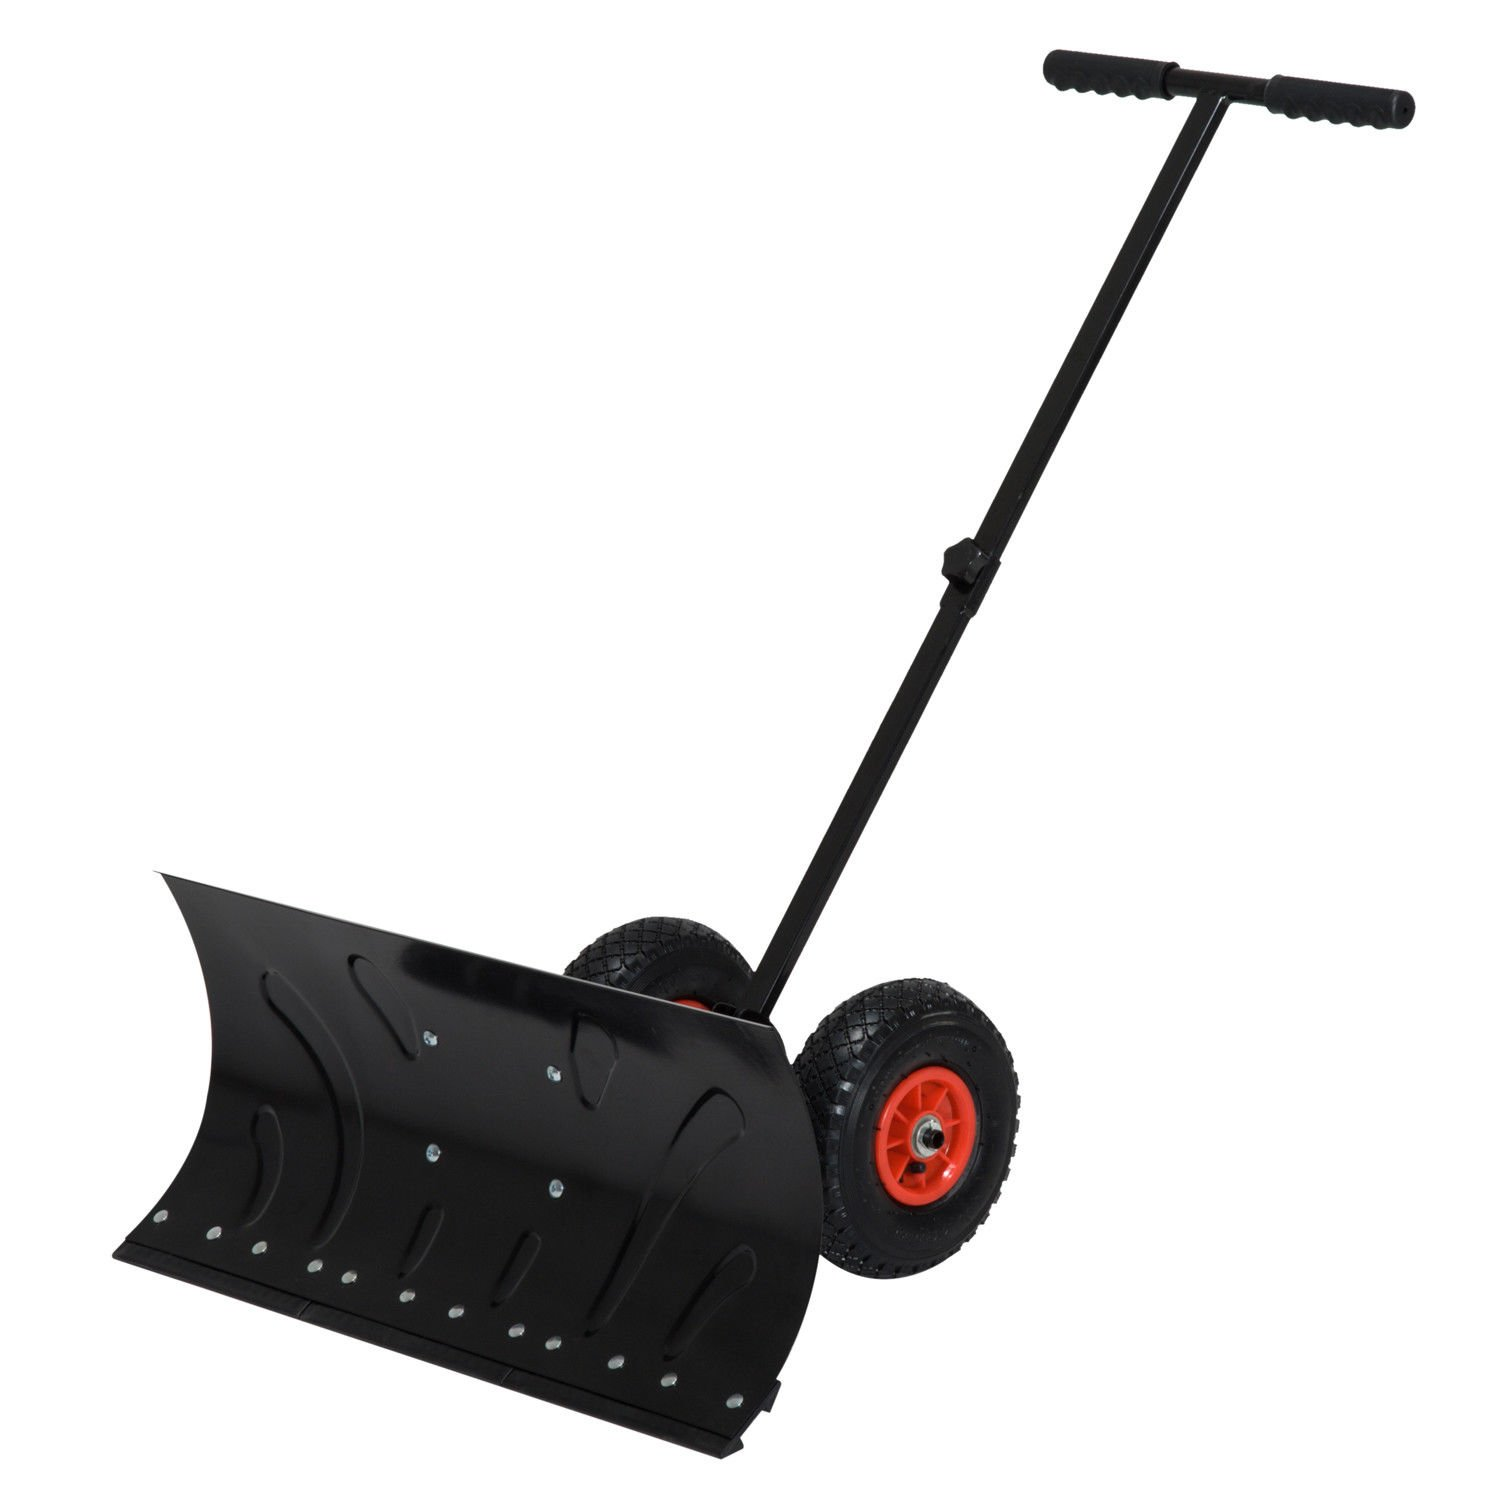 Outsunny 29'' Blade Rolling Snow Pusher Shovel with Wheels and Adjustable Handle by HOMCOM